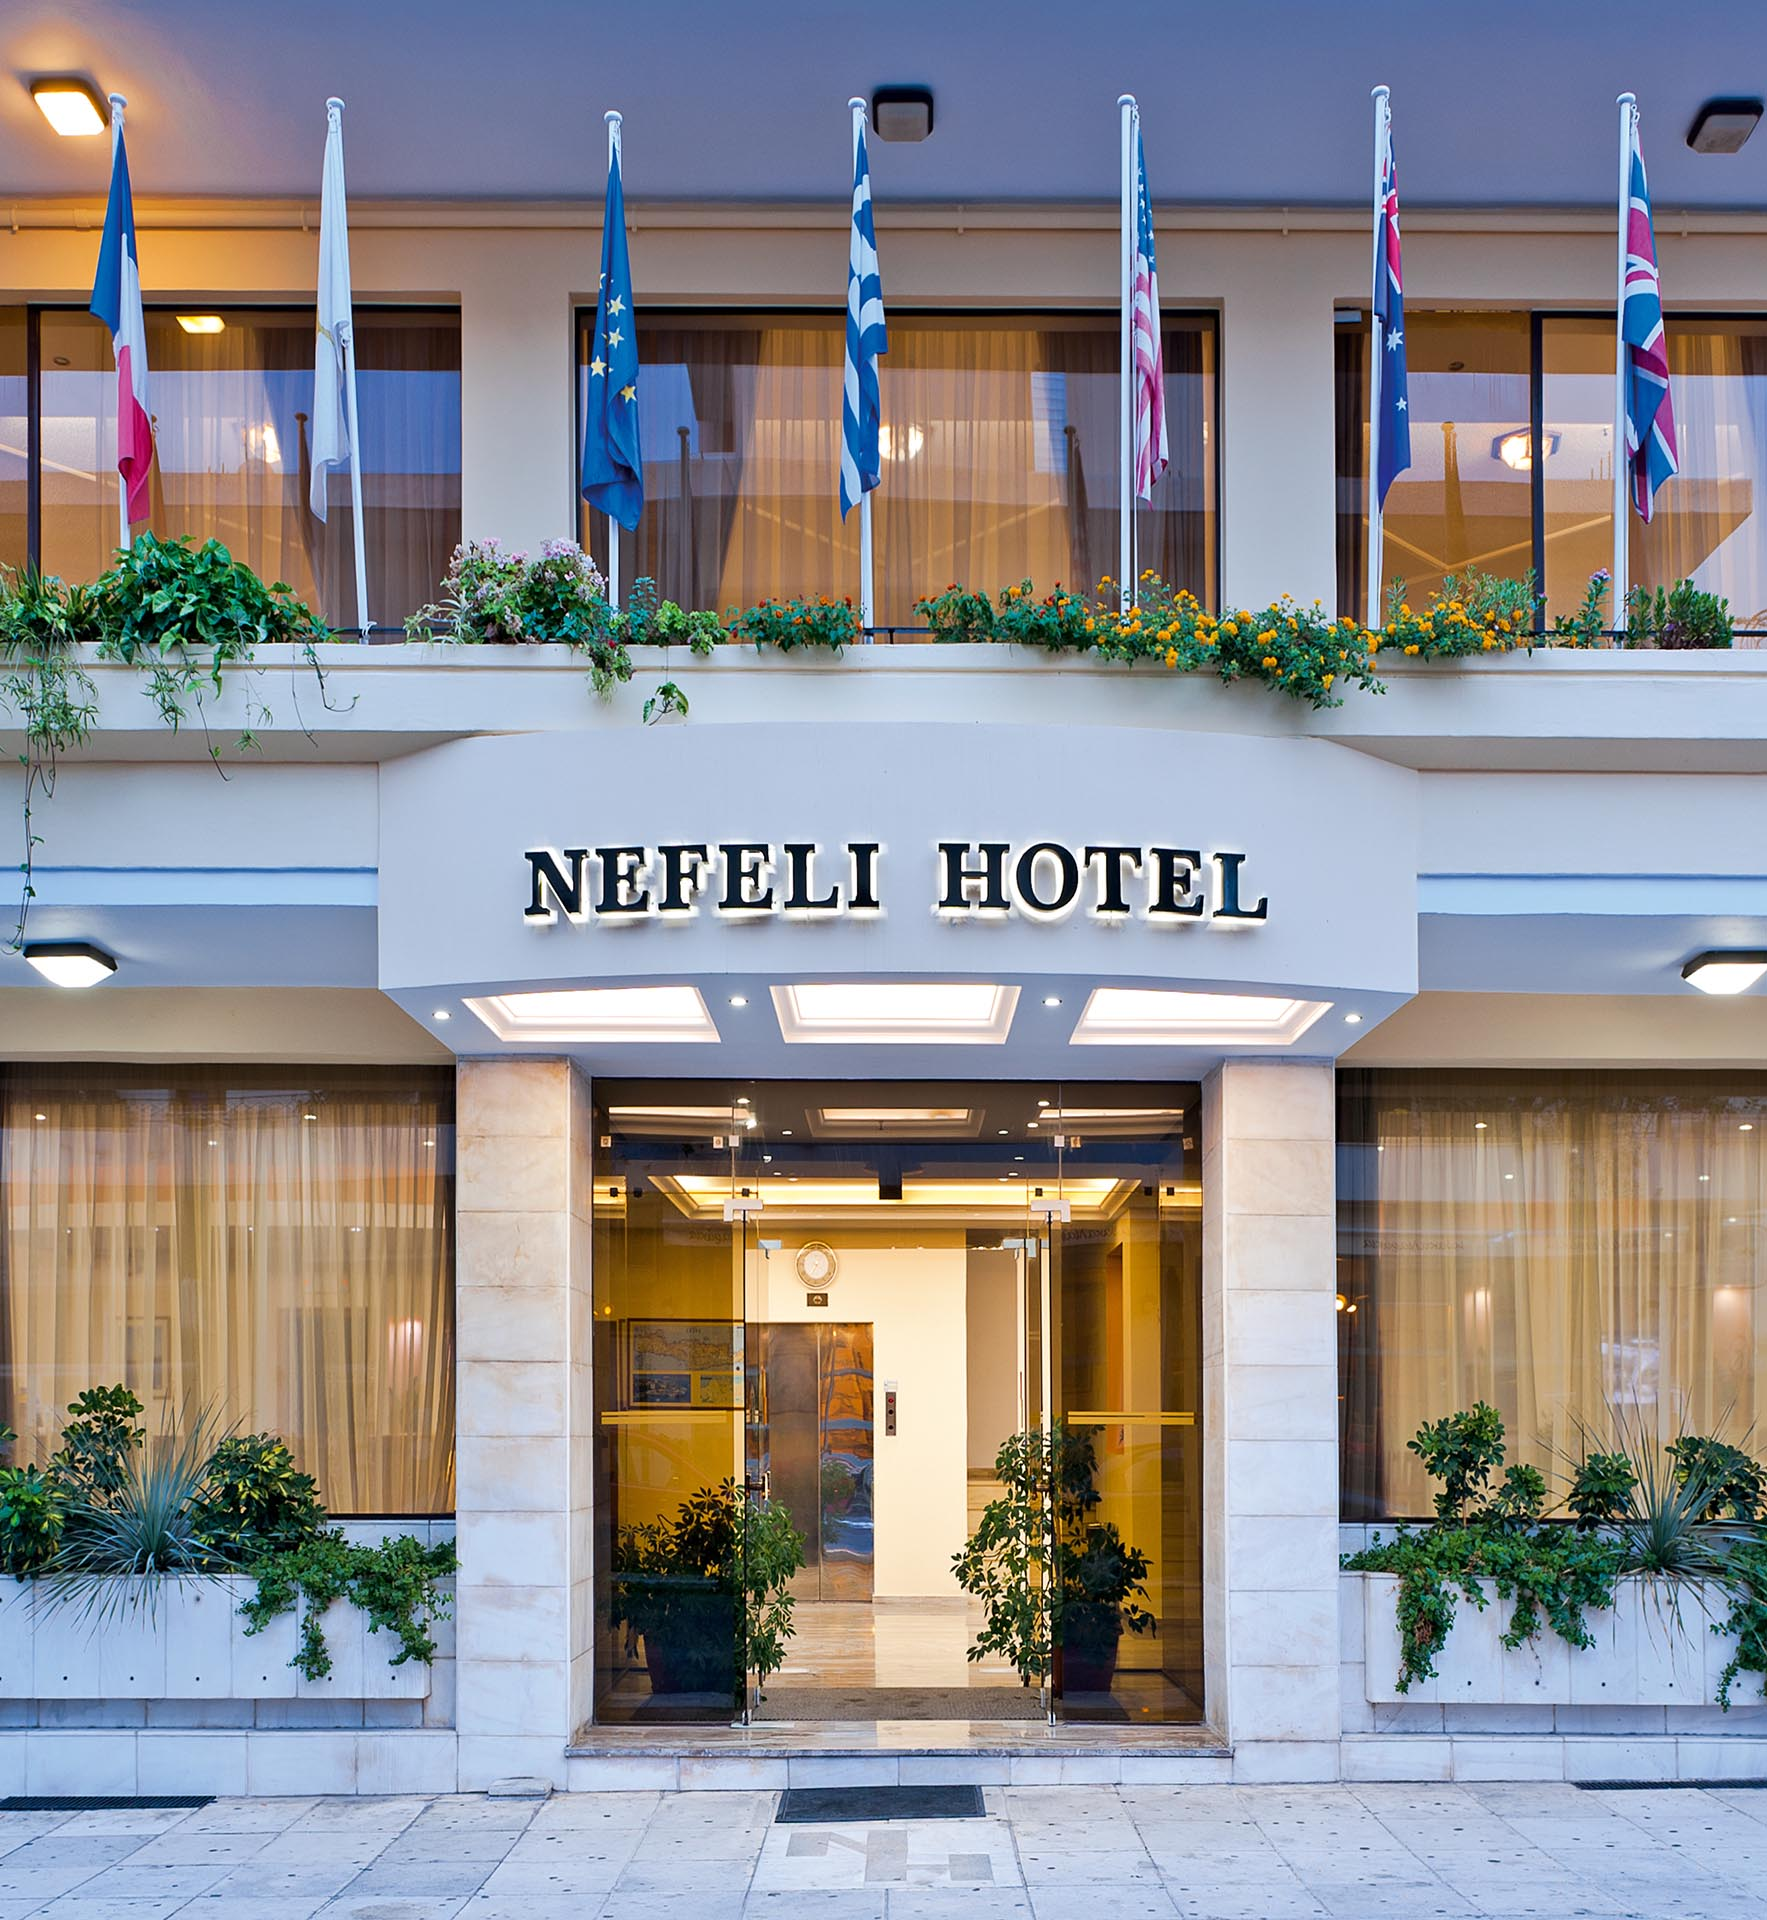 Nefeli Hotel's main entrance